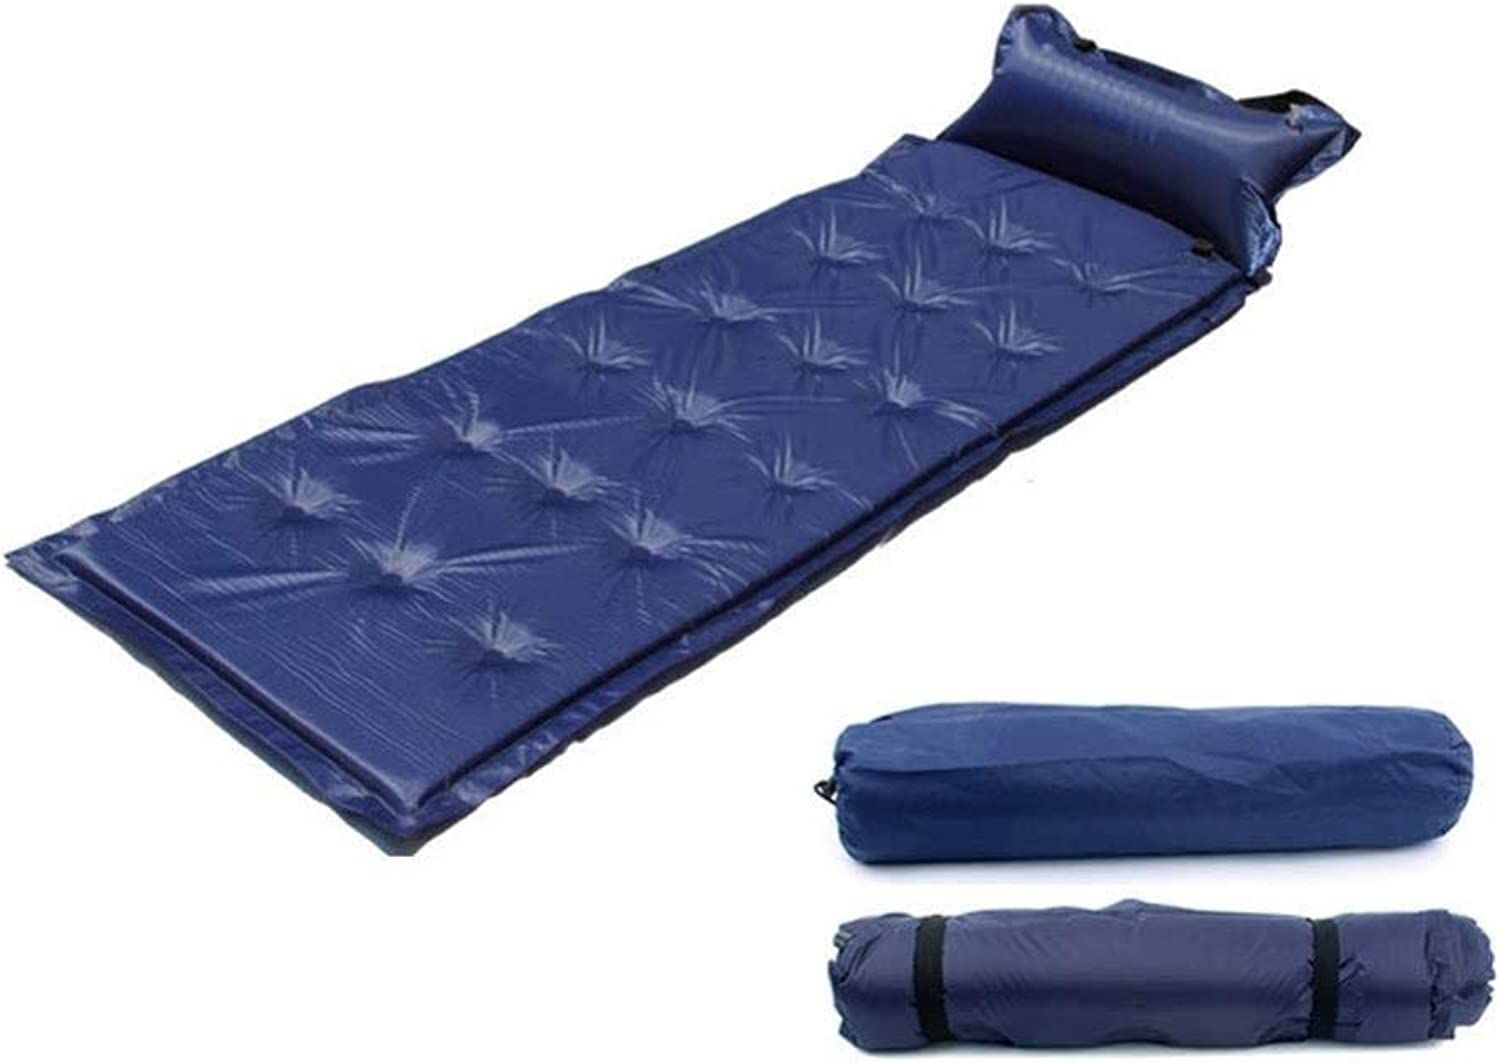 ForallMs SelfInflation Sleeping Matress with Air Pillow,Camping Inflatable Sleeping Pad Portable Mattress Air Bed for Camping, Travel, Hiking, Backpacking,Green